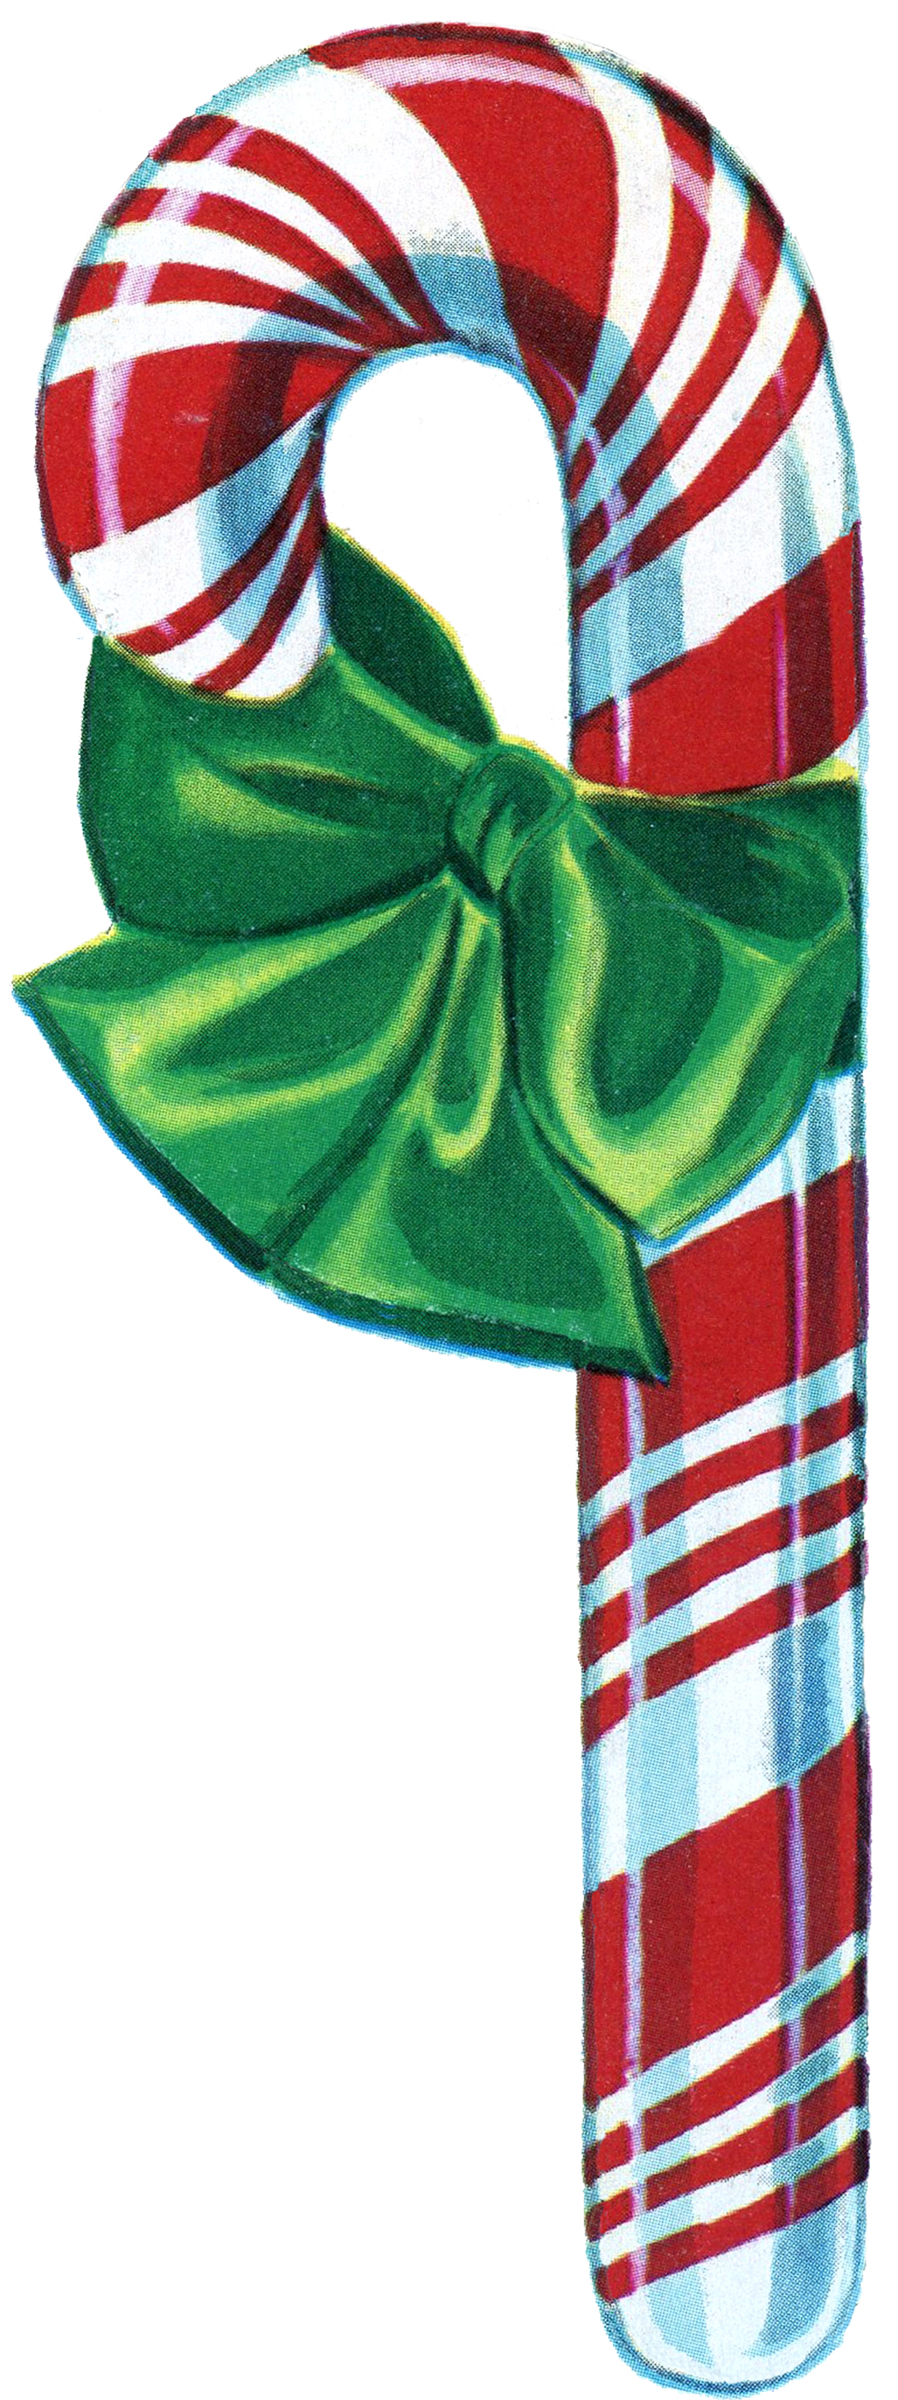 Free Vintage Christmas Clip Art Candy Cane The